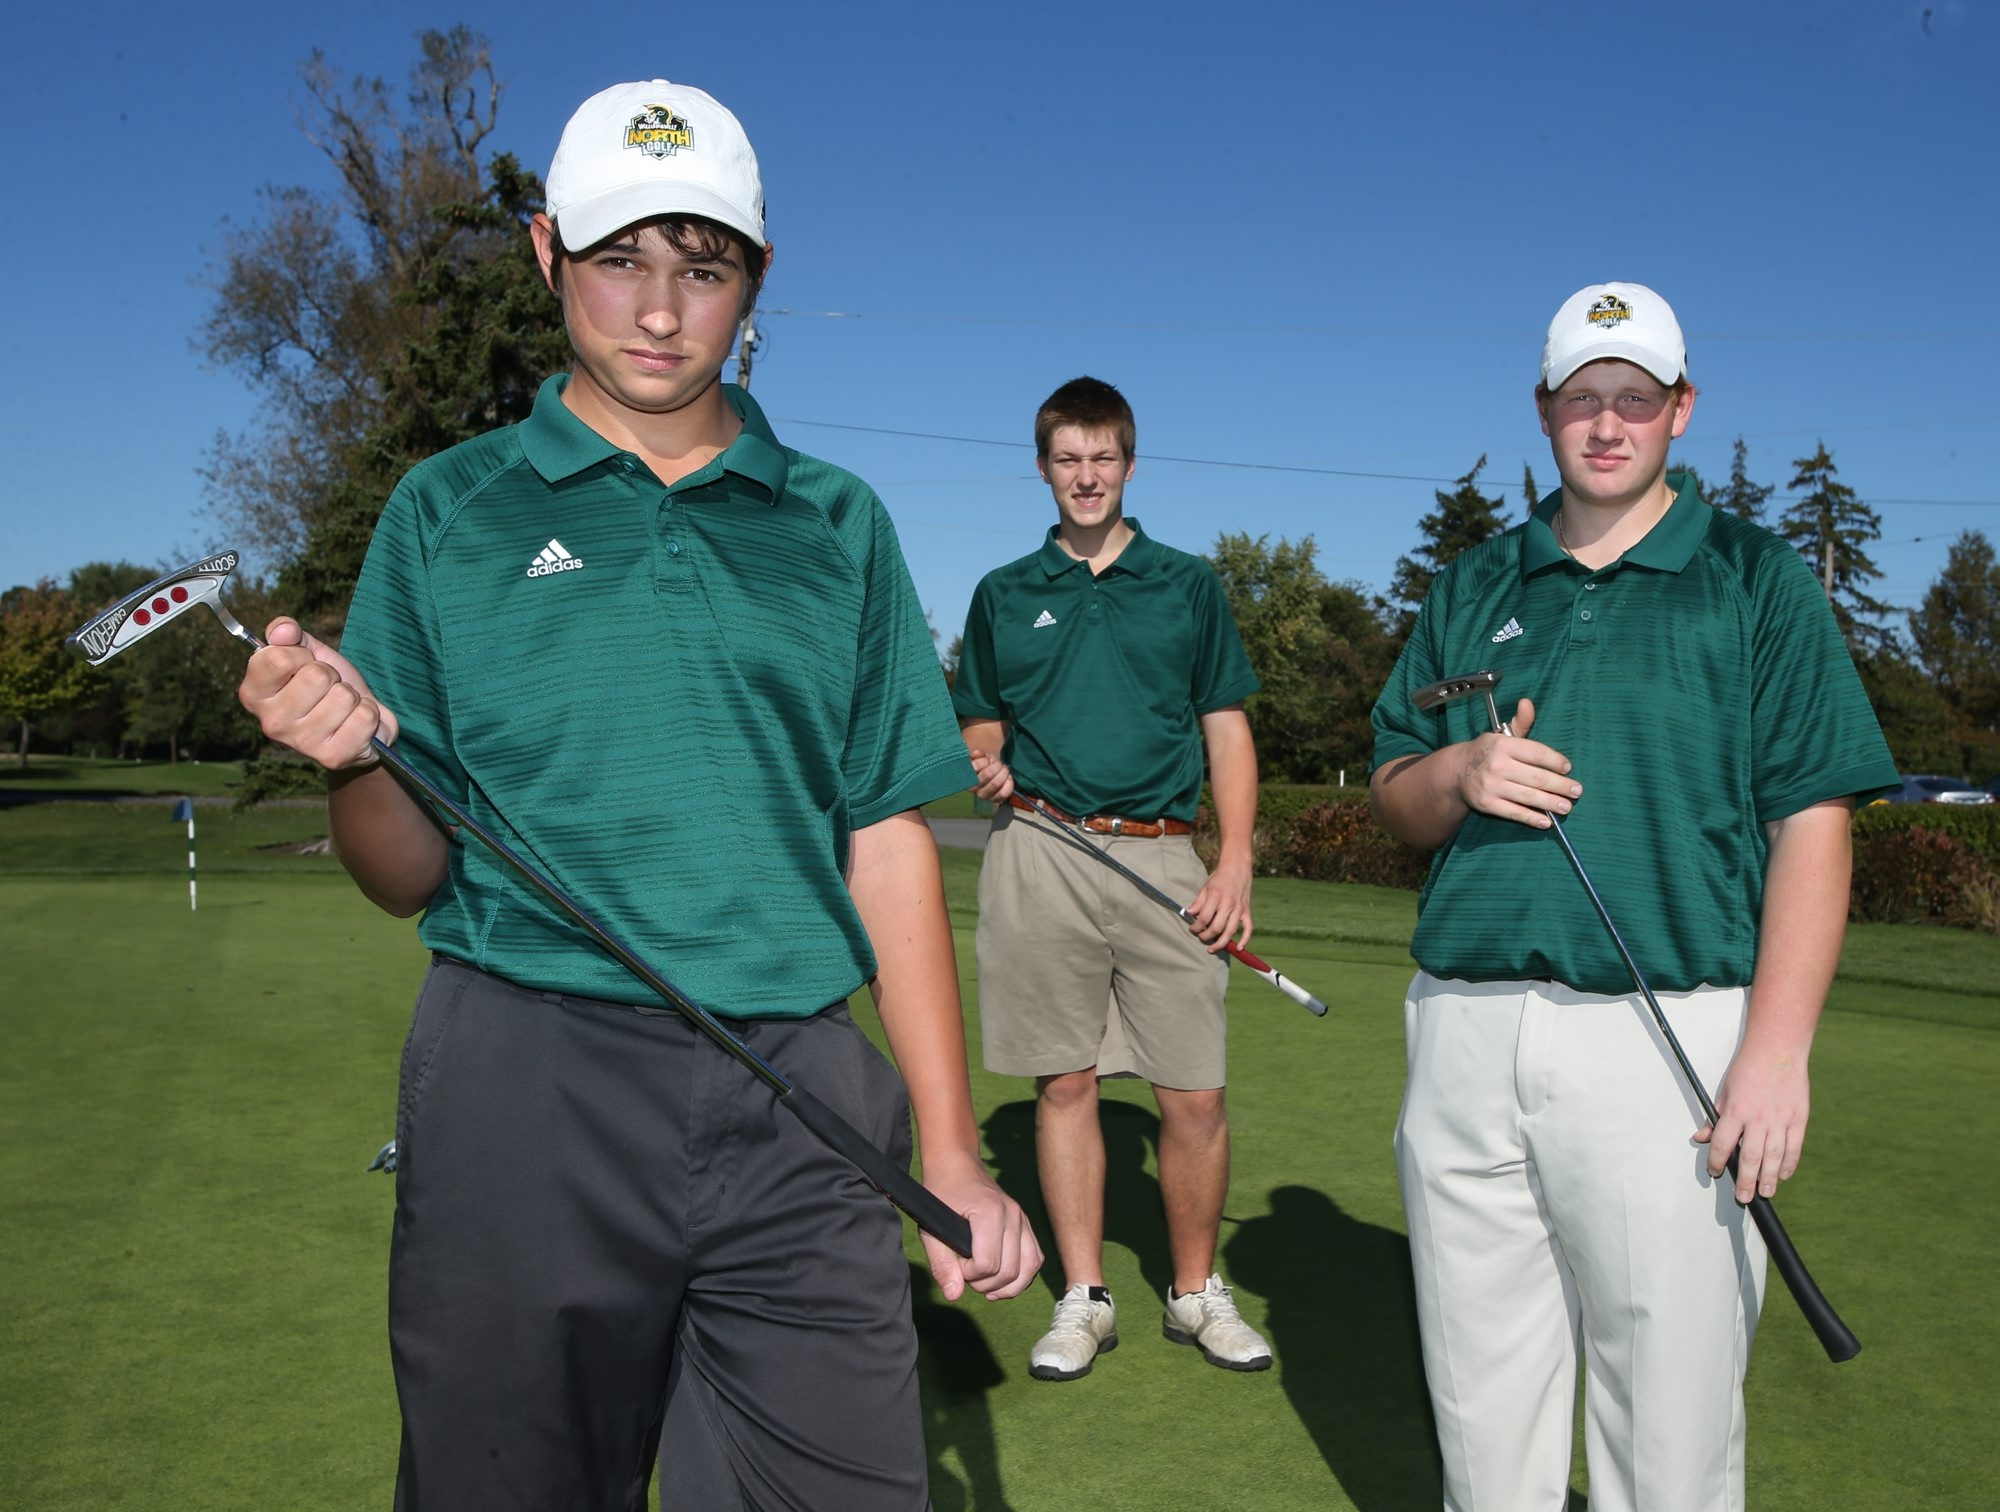 Williamsville North's Ben Reichert, Tim Kreuz and Matt Lesinski are part of a dominant Spartan squad that is among the favorites to win today's ECIC Championships at Diamond Hawk.